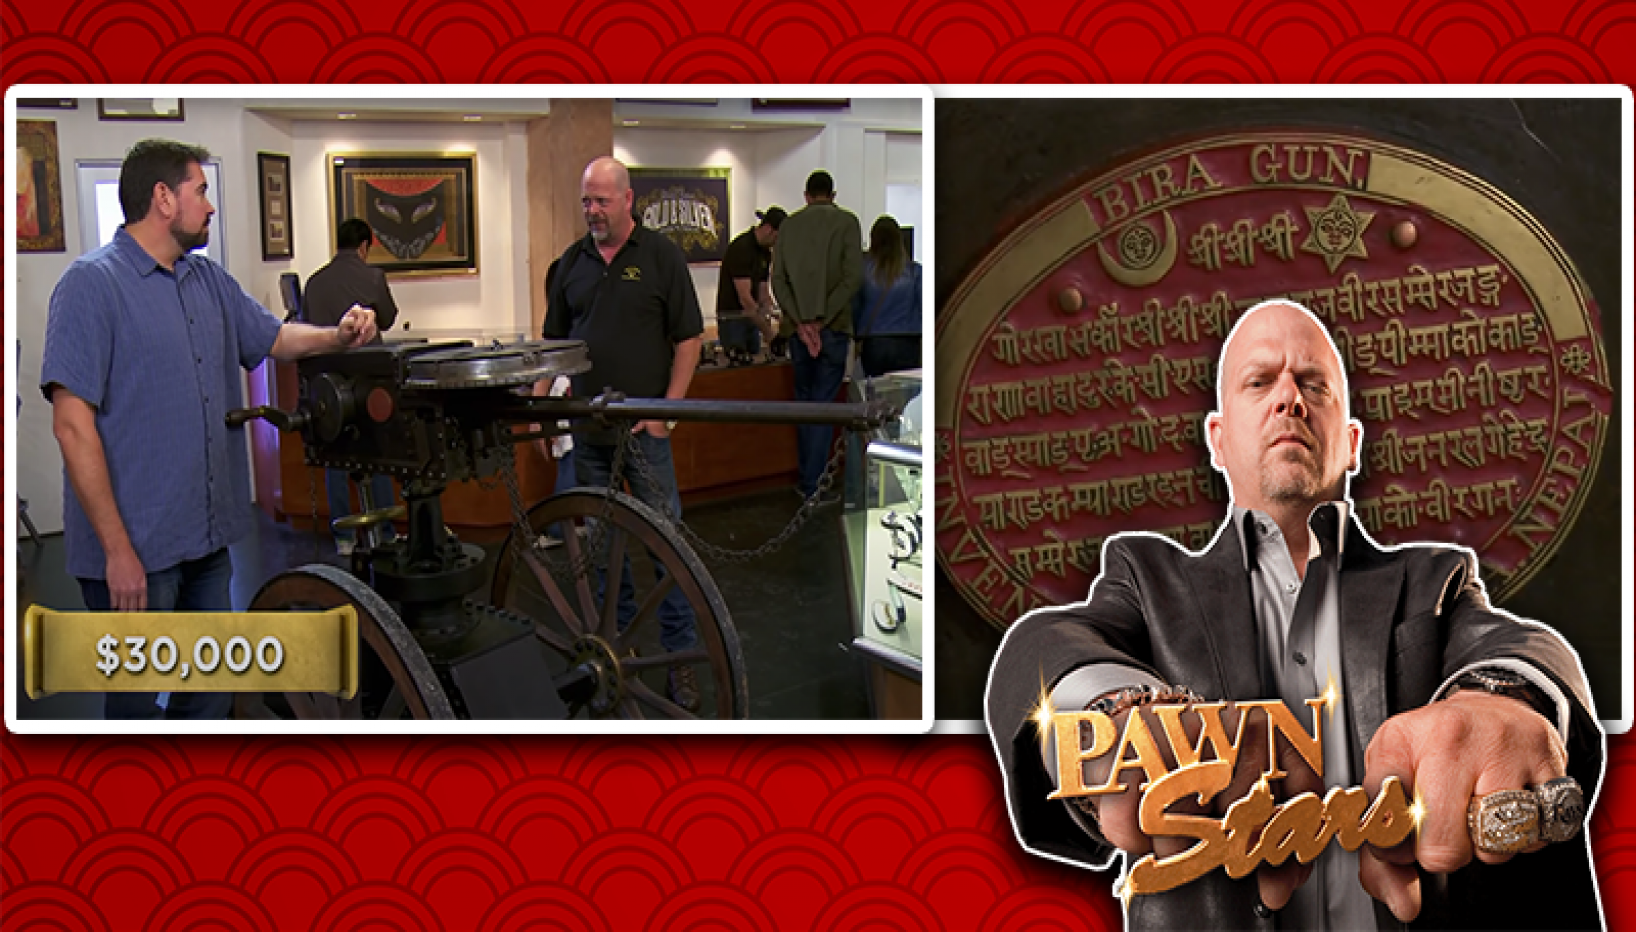 How Did A 125-Year-Old Nepali Bira Gun Land In Pawn Stars? Here's The Full Story!